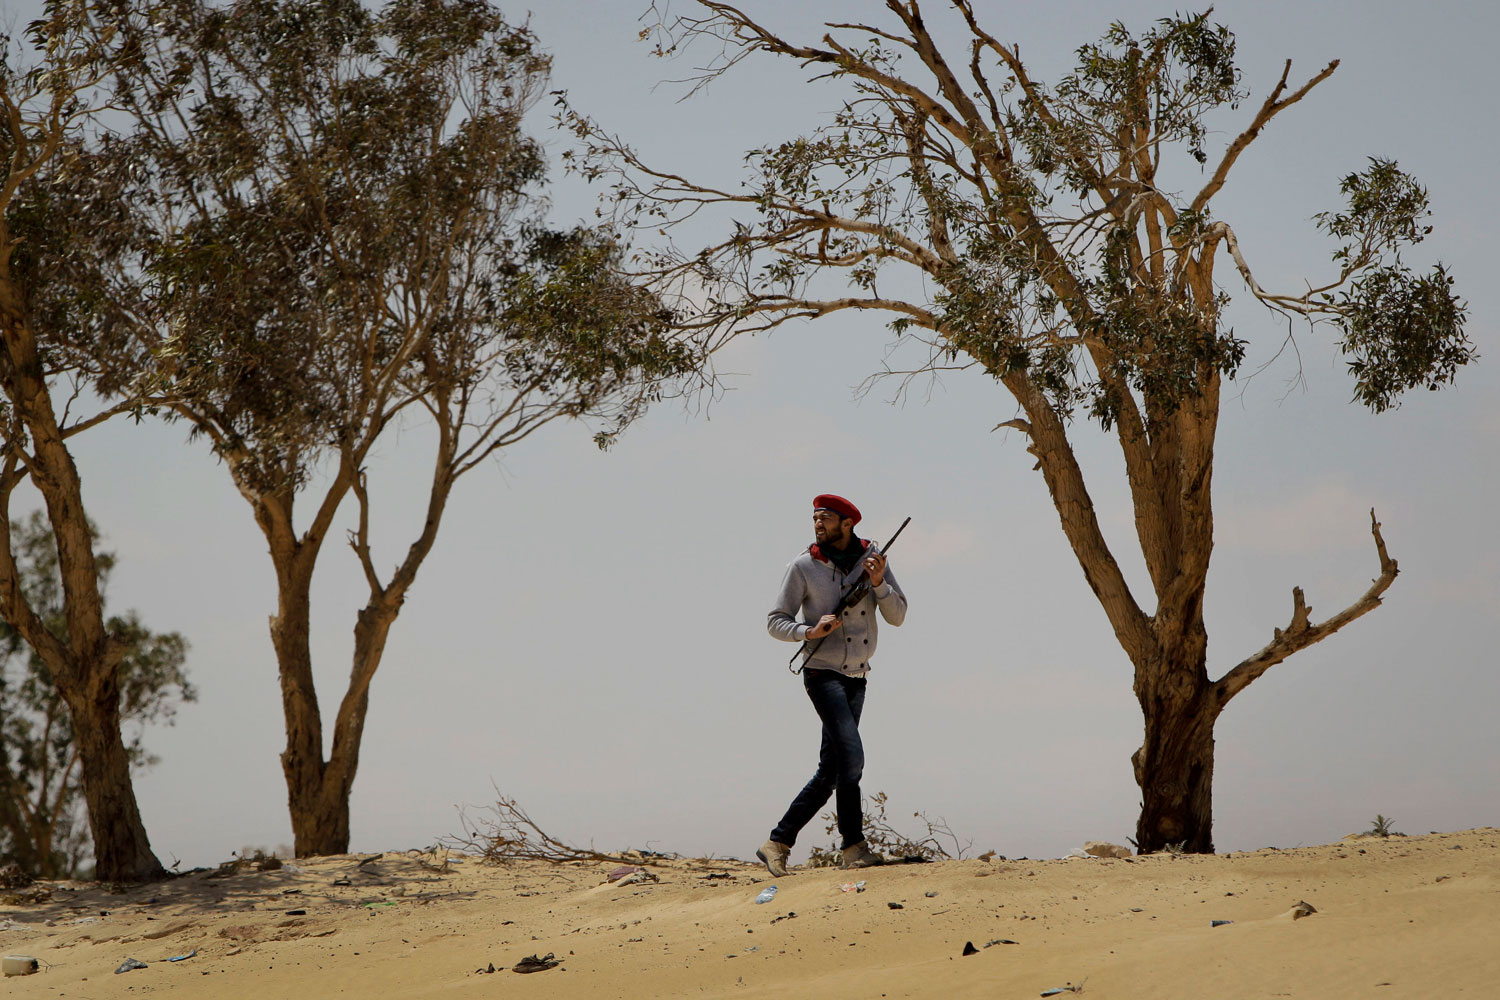 April 9, 2011. A rebel fighter in Libya walks on top of a sand dune to view smoke rising from the town of Ajdabiyah, which was mostly under the control of pro-Gaddafi forces. Government soldiers and rebels battled in the city's streets in the most serious Gaddafi-led push against rebel forces since NATO air strikes began.